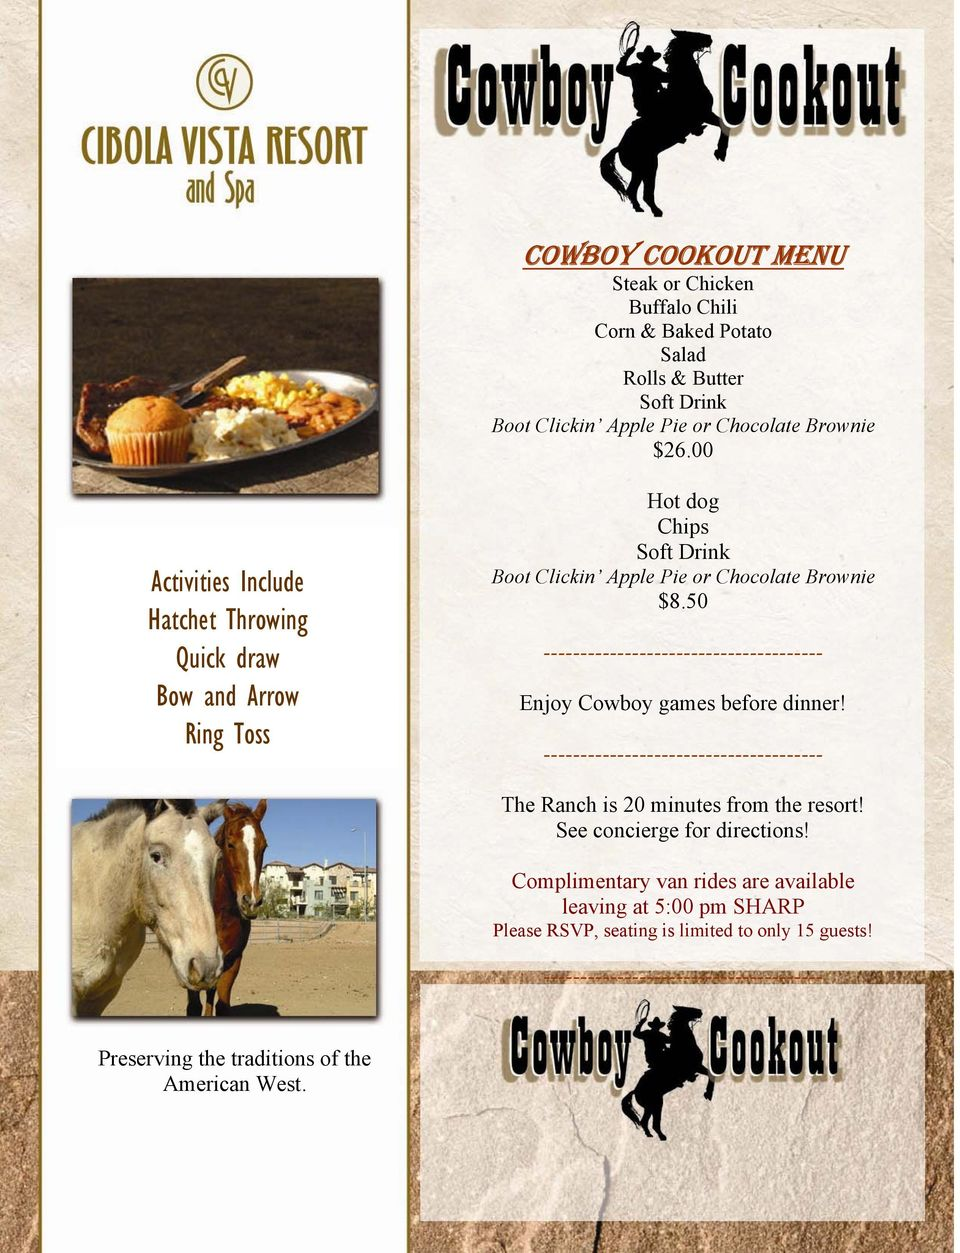 50 -------------------------------------- Enjoy Cowboy games before dinner! -------------------------------------- The Ranch is 20 minutes from the resort!